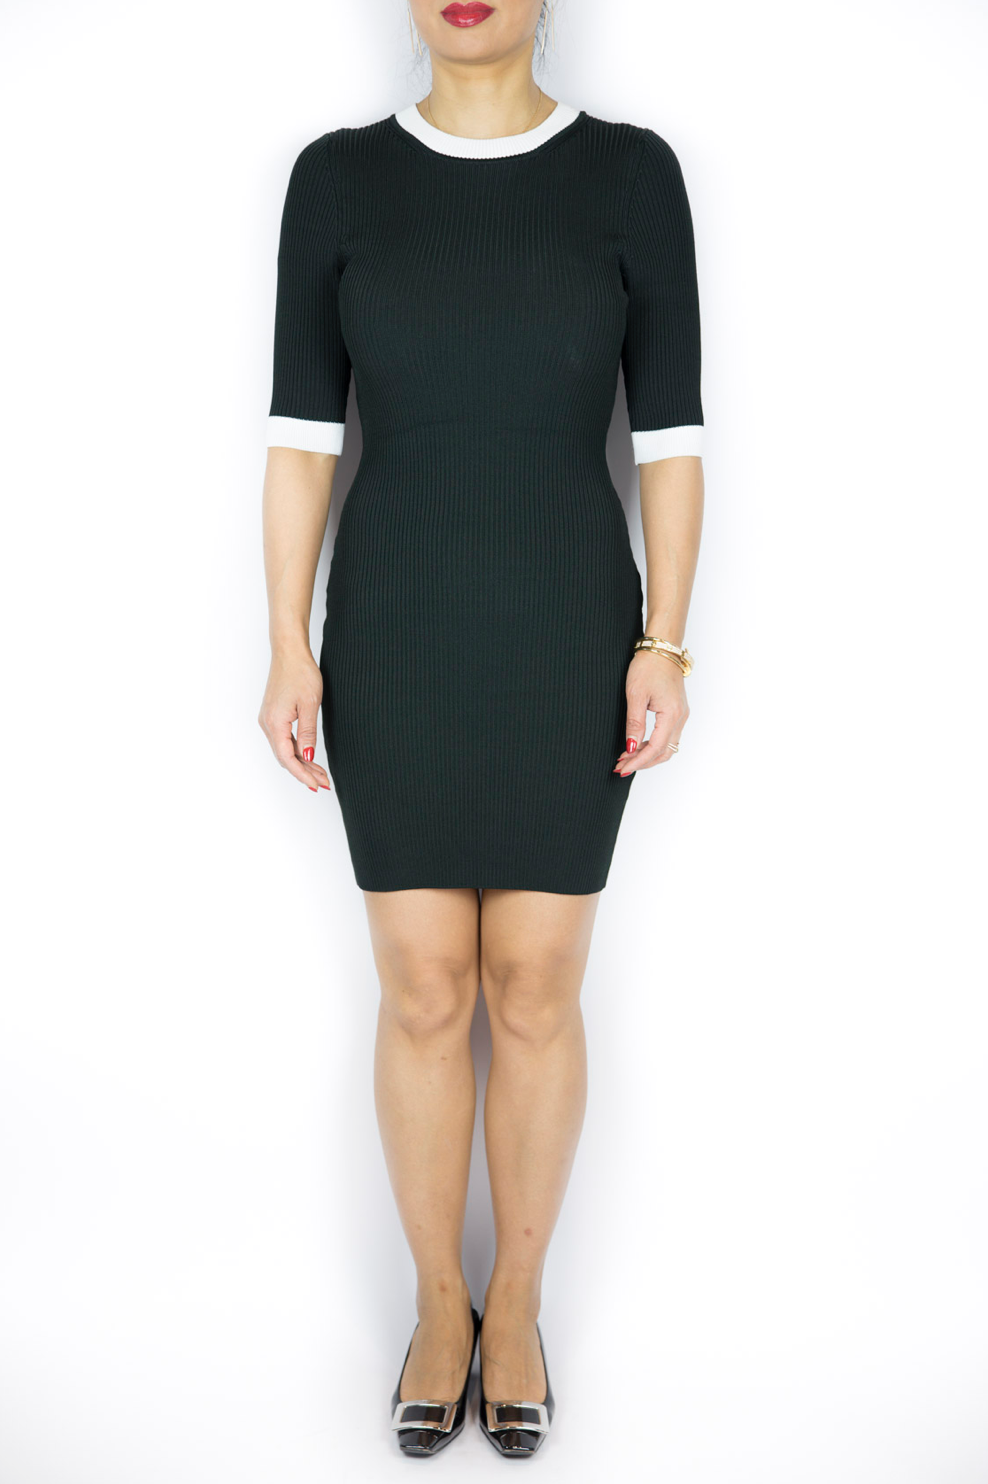 ALC - Dark Green Mini Dress - Size S